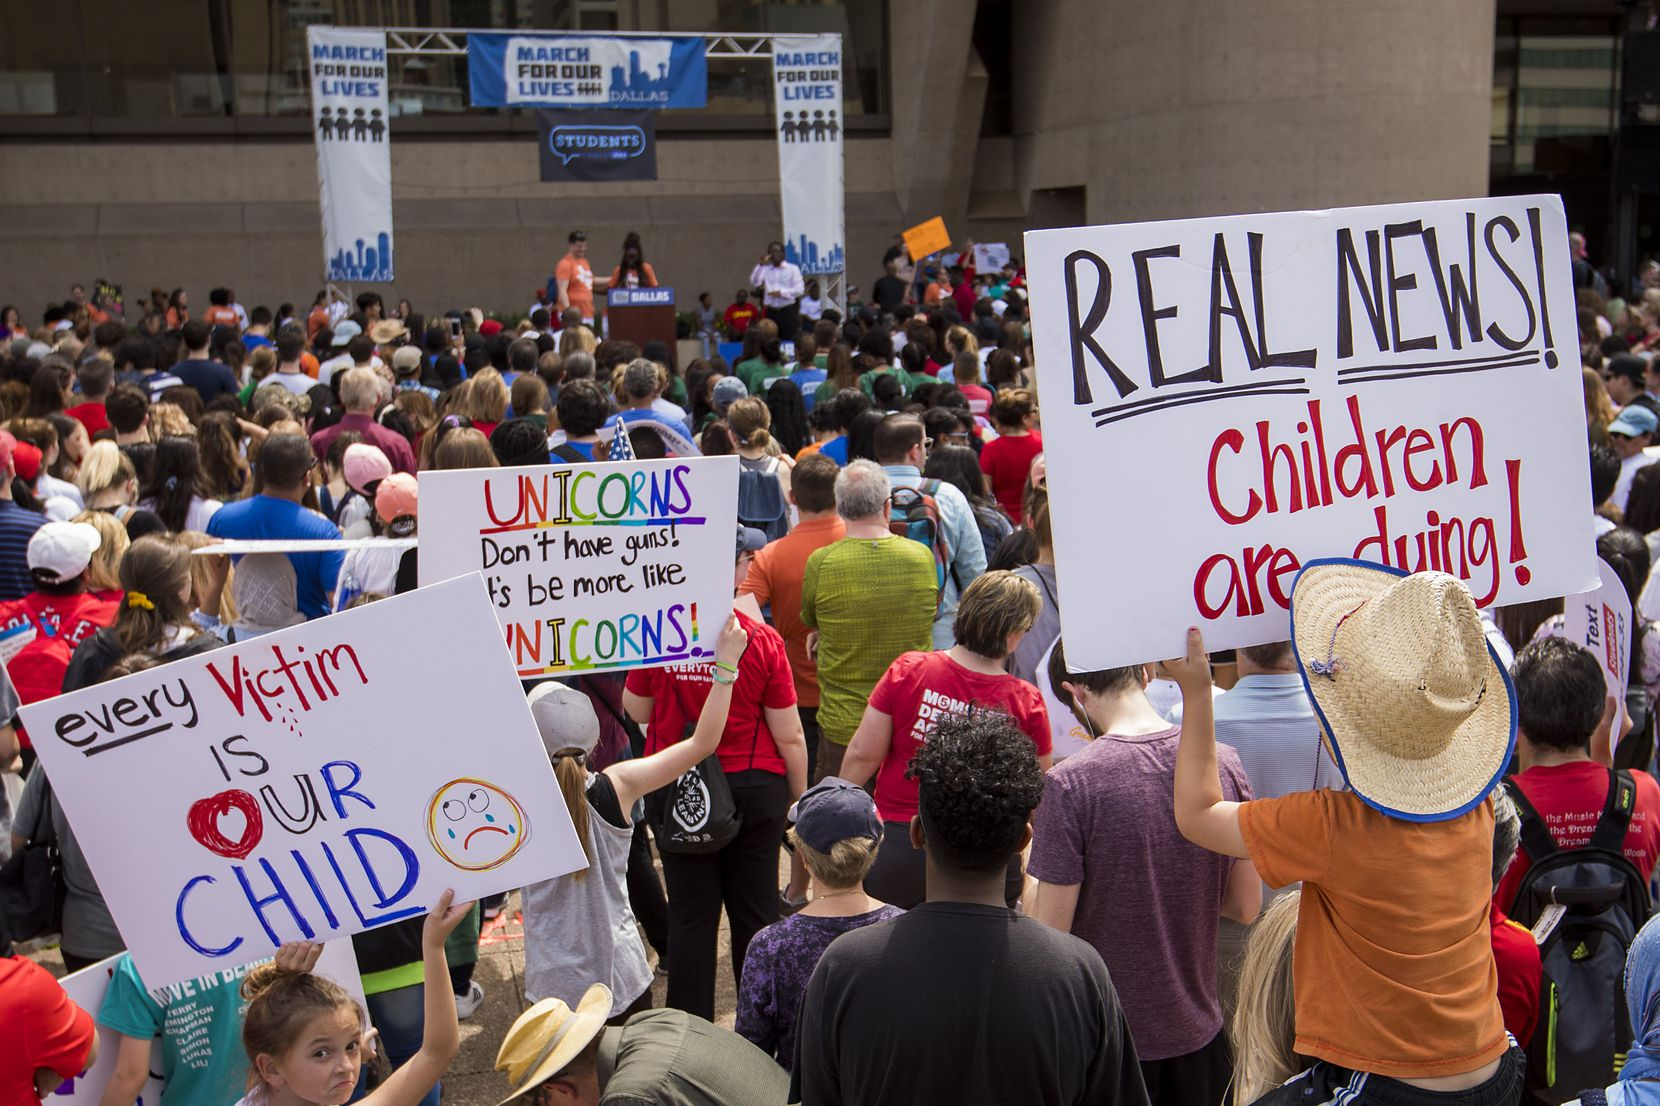 """Brooks Herr, 4, holds a sign reading """"Real News! Children are dying!"""" as he listens to speakers from atop the shoulders of his mother Ariel Herr."""